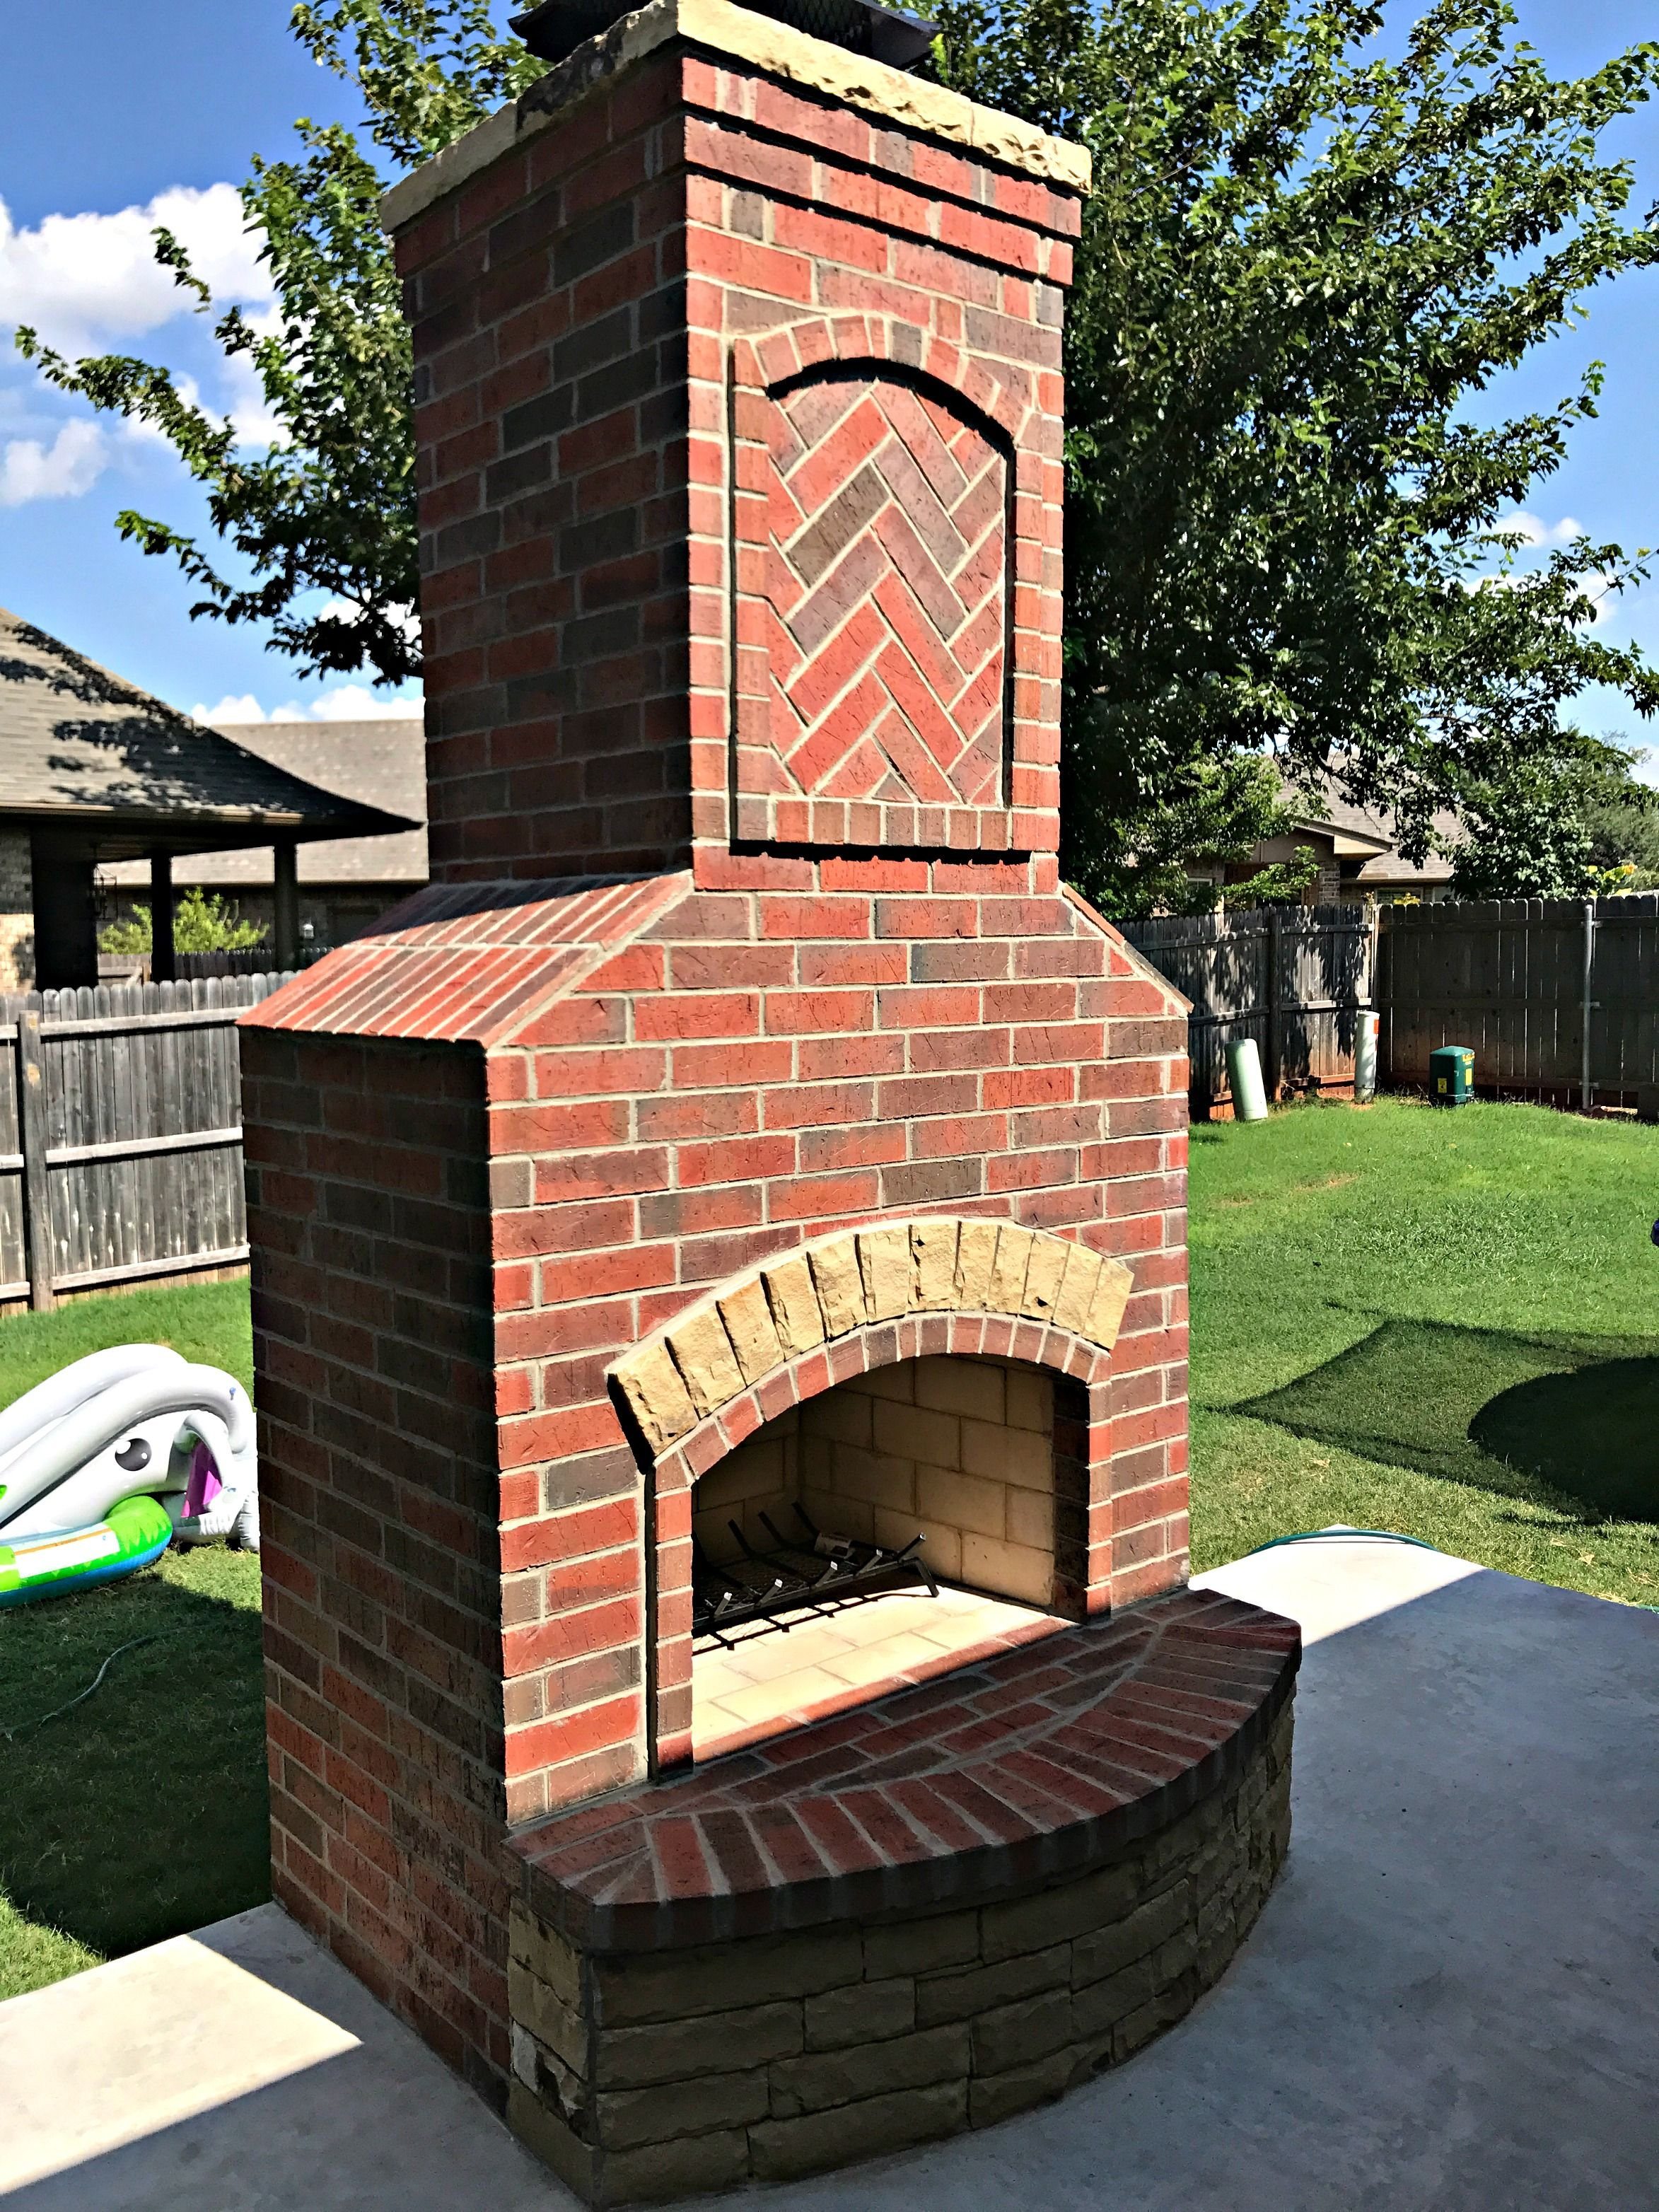 Pin by PMHOKC.com on Custom Outdoor Fireplaces | Fireplace ... on Simple Outdoor Brick Fireplace id=49279